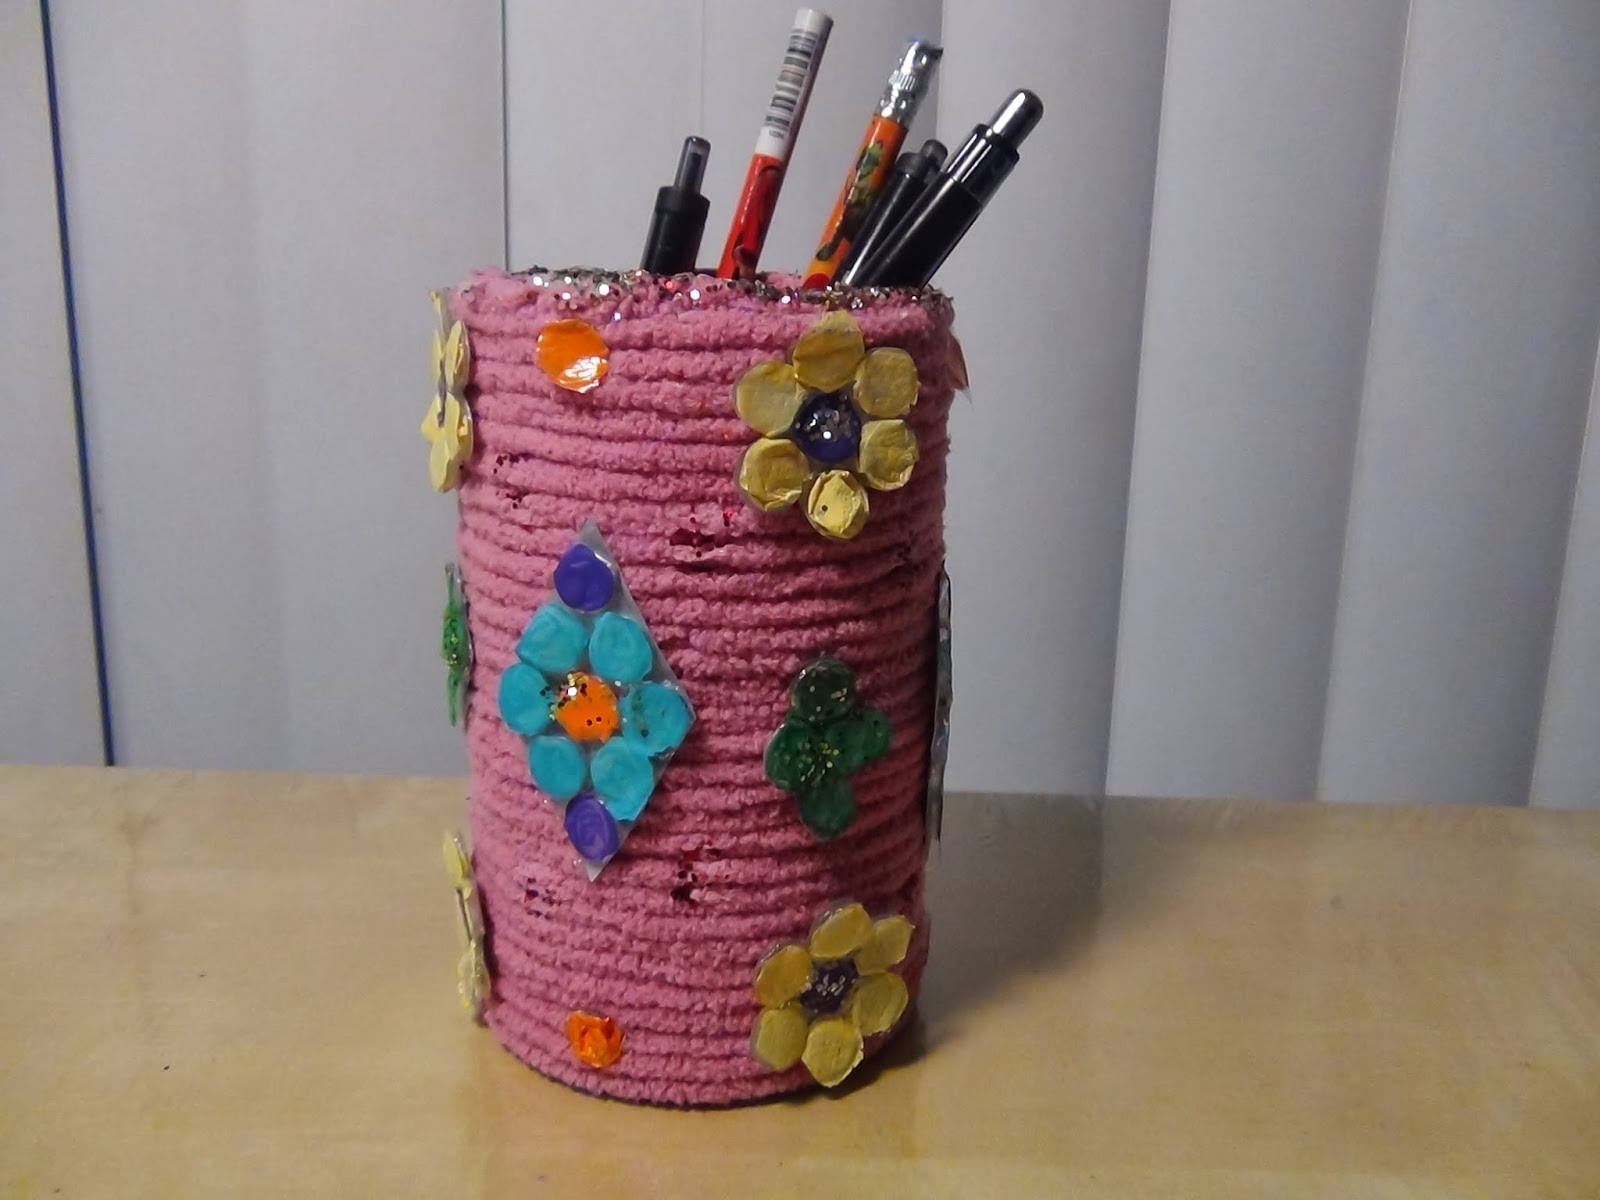 Creative diy crafts diy pen spoon or brush holder with for Creative things out of waste